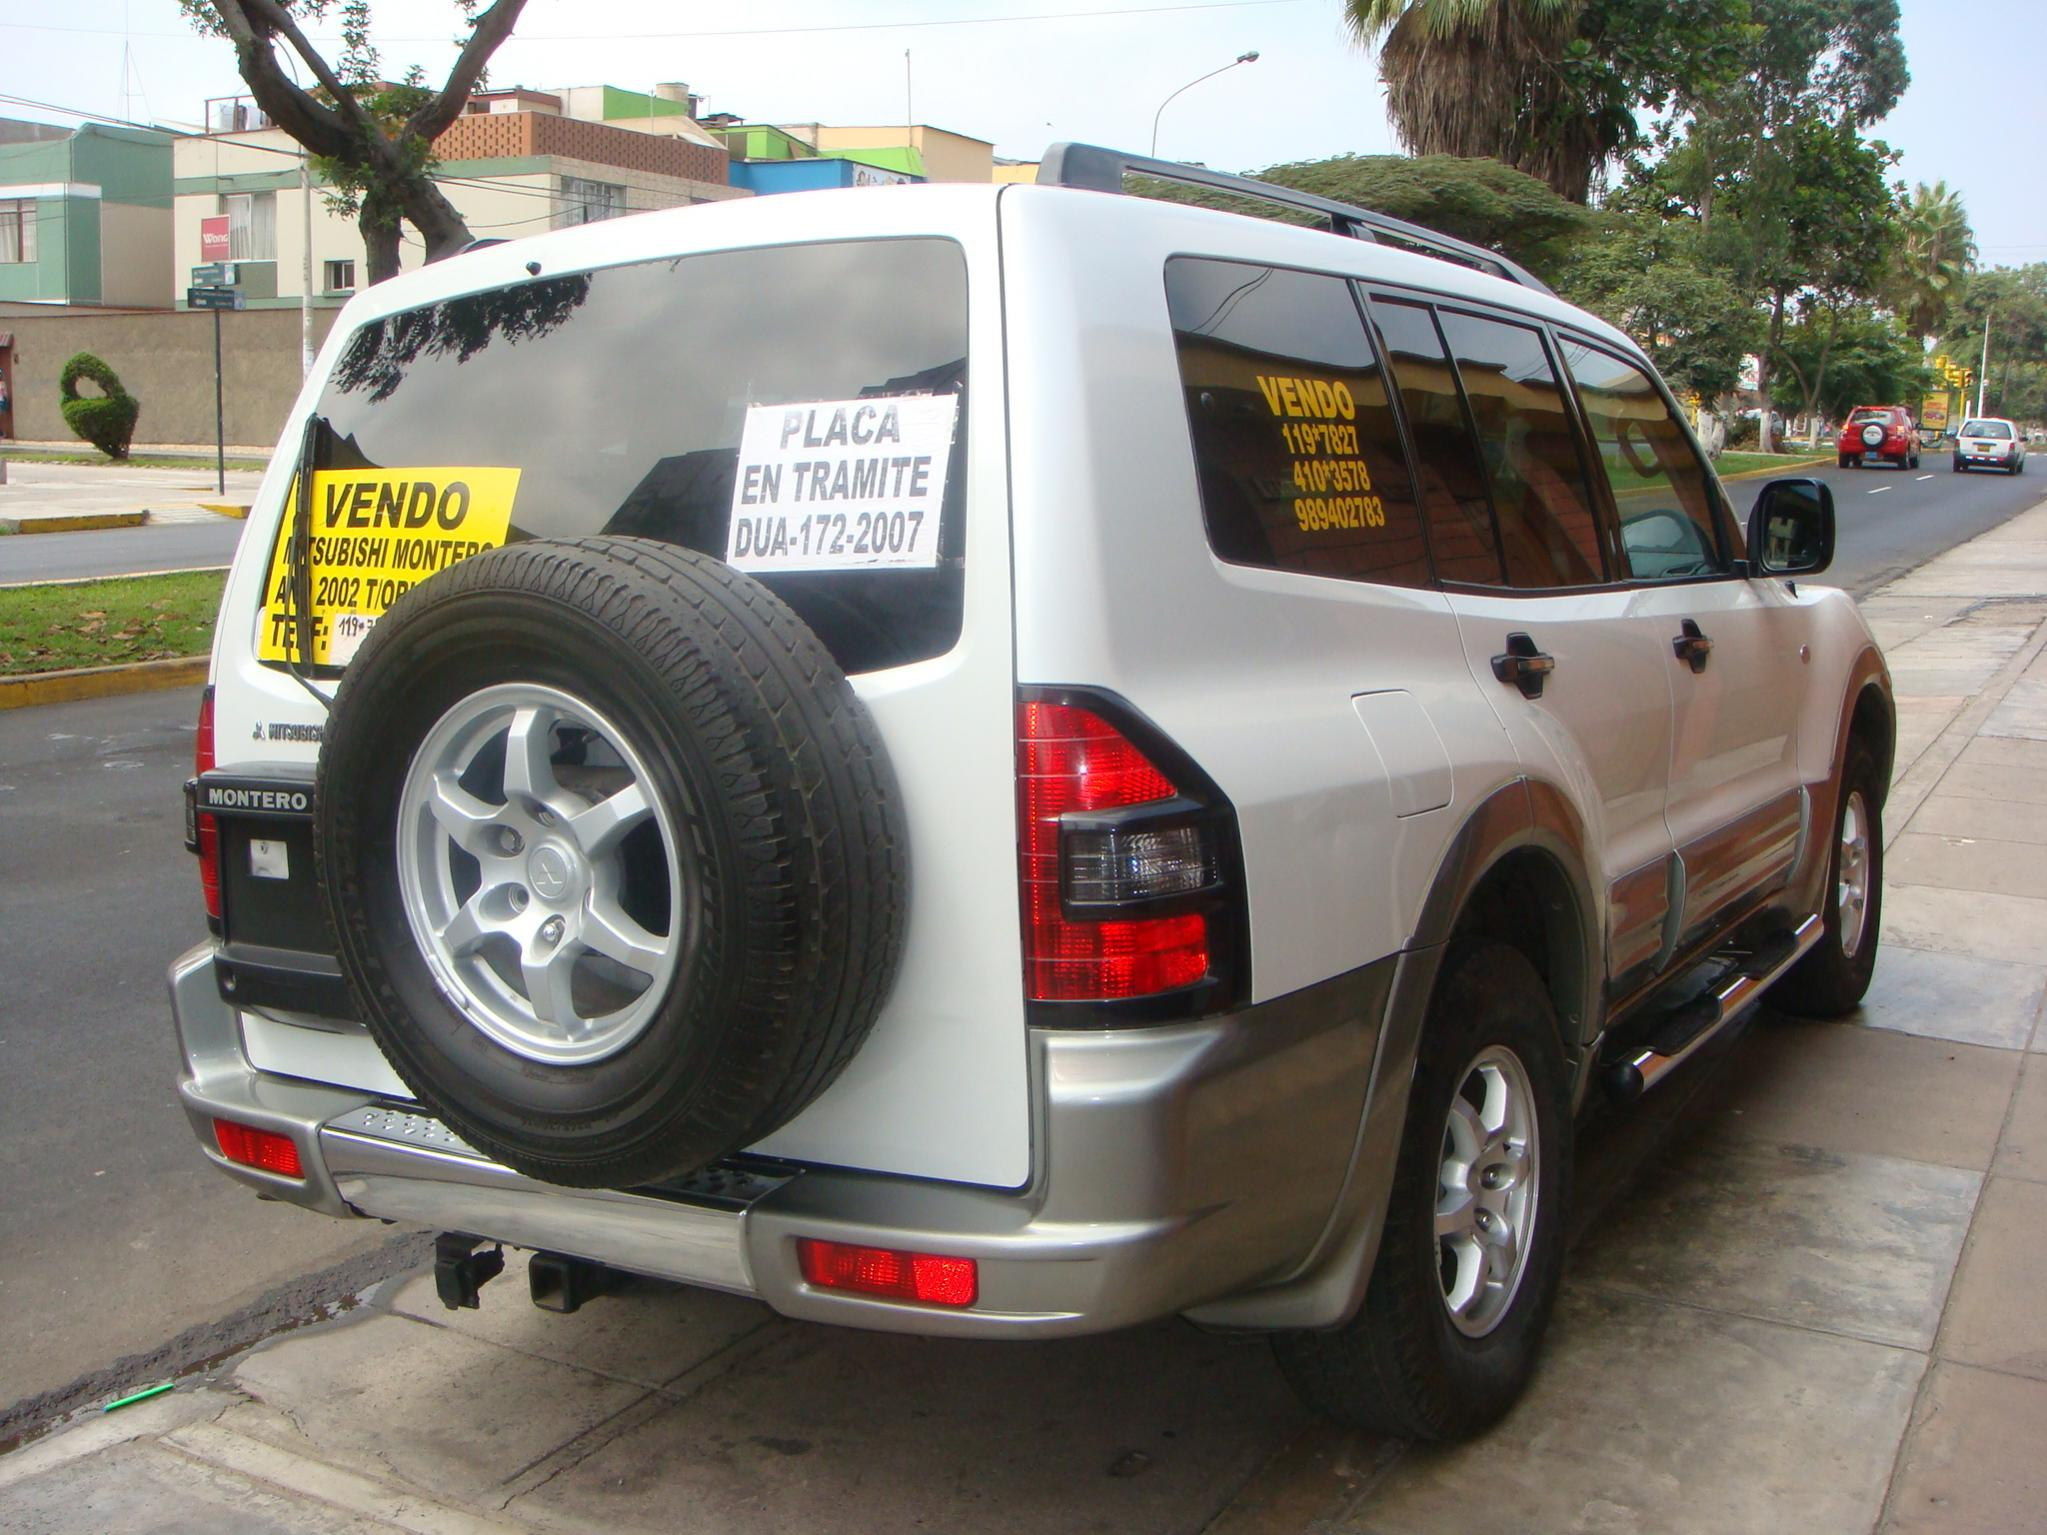 Pajero 3 2 di d winter edition immediately navigation 2011 moreover 4105 Mitsubishi Montero 2002 11 as well 093529 moreover 300854956538 besides 2006 Mitsubishi Eclipse Pictures C2846 pi36684809. on montero car